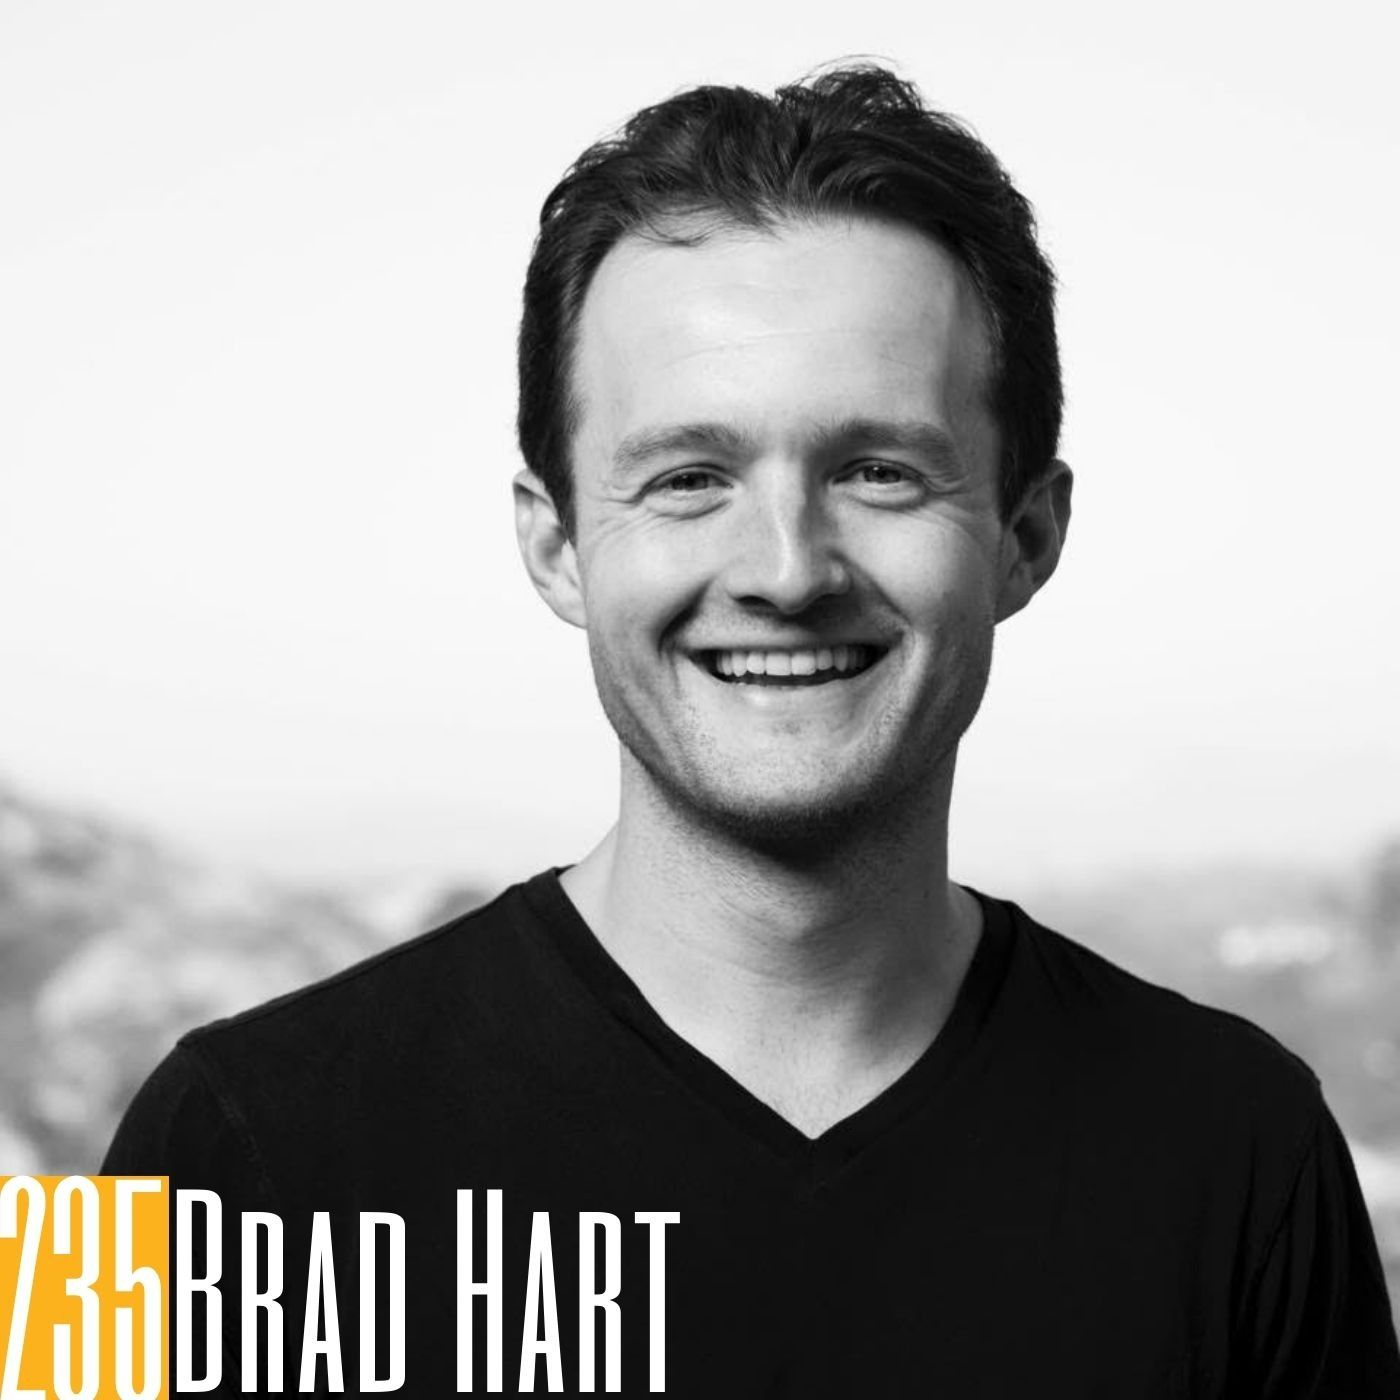 235 Brad Hart - Money, Marketing and Masterminds